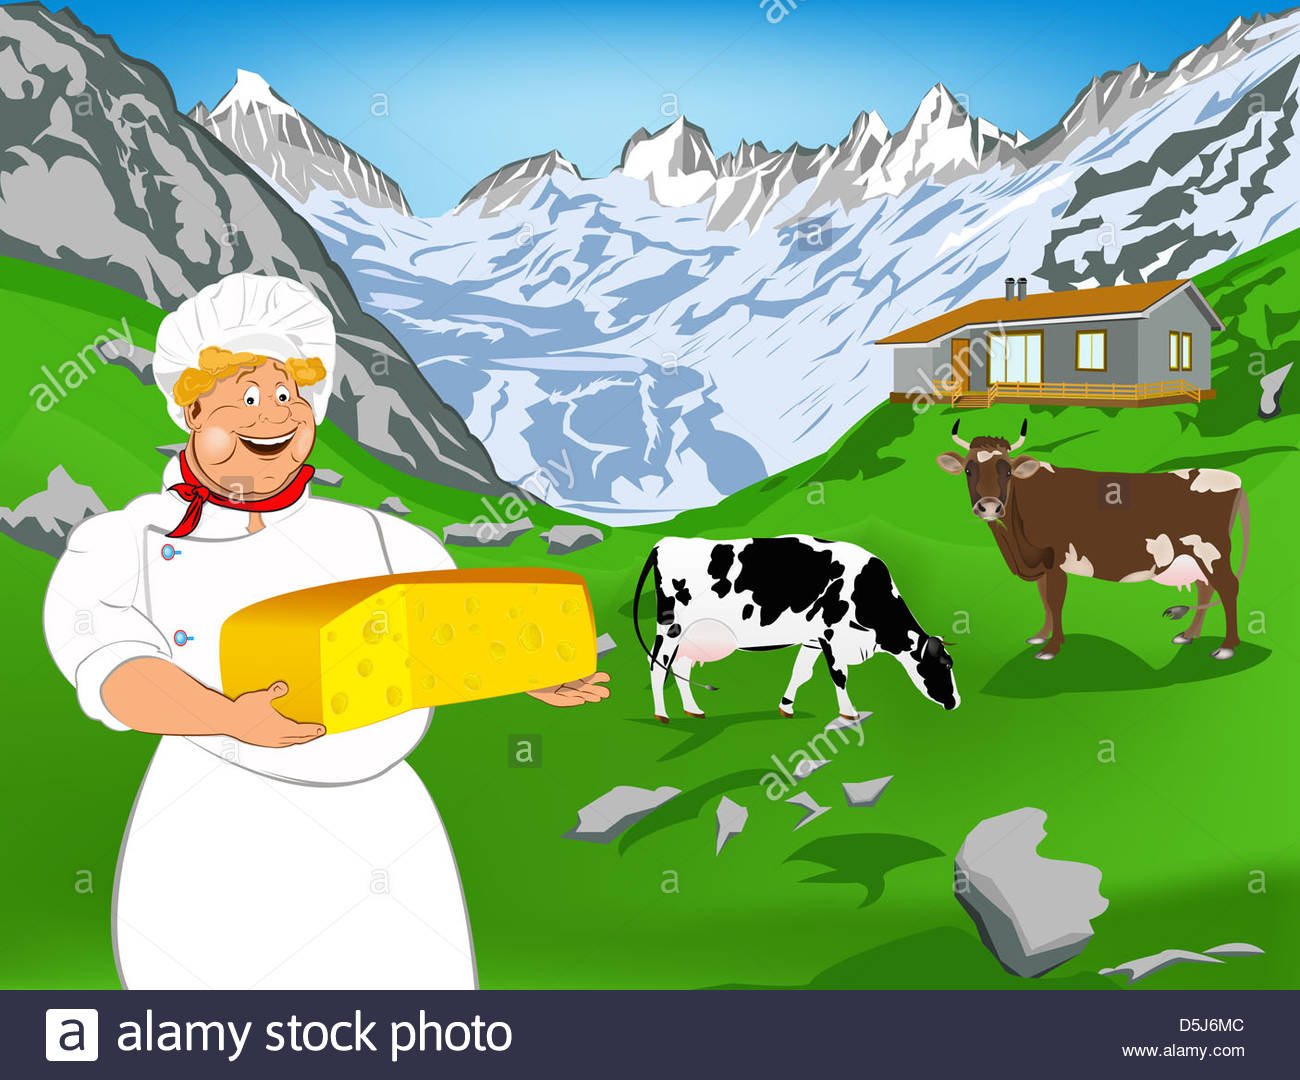 Chef,alps,food,parmesan,swiss,cheese,cow,health,gourmet,house.